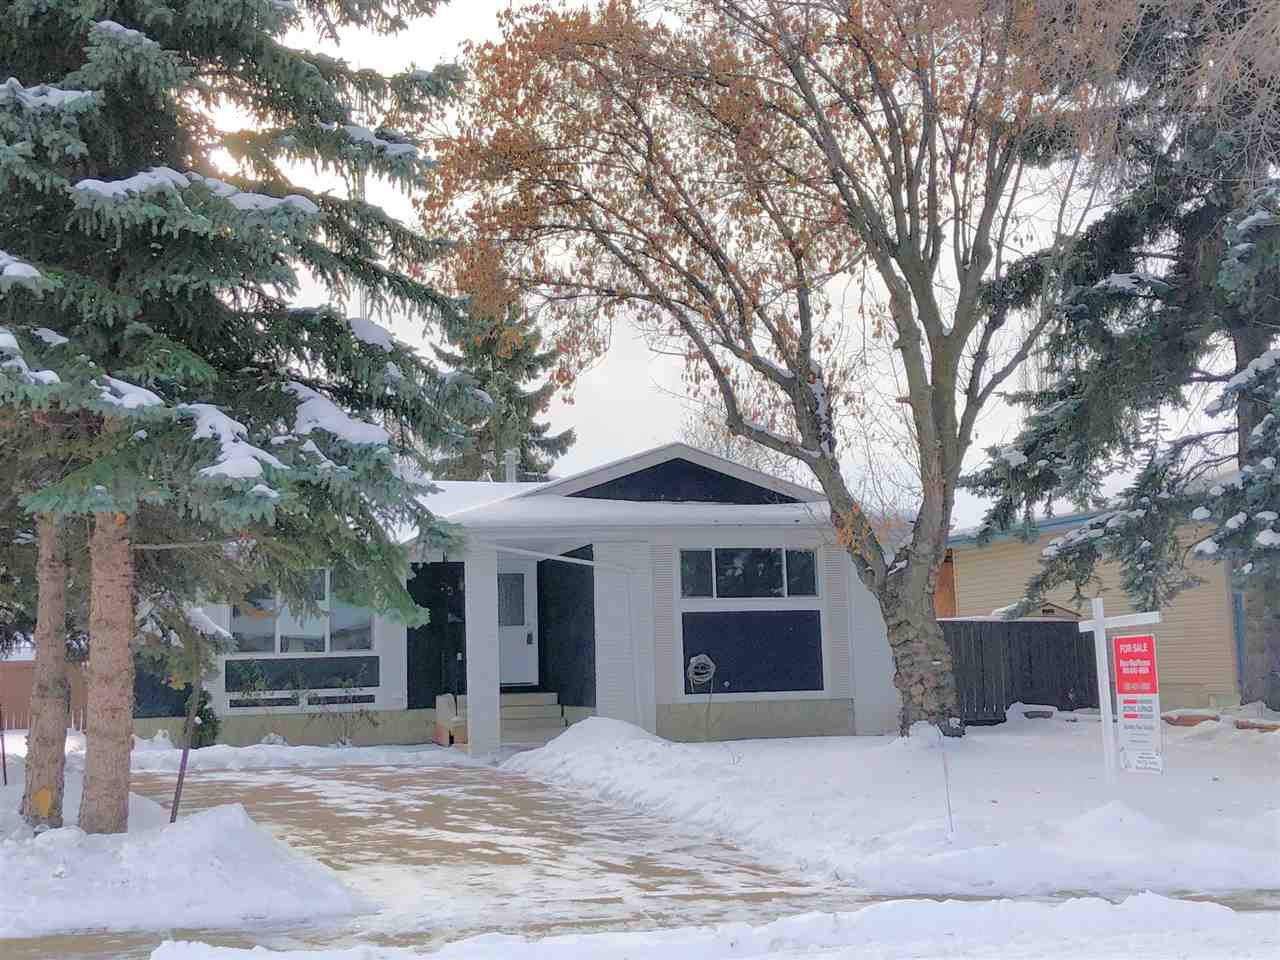 Quick possession is available for this Sherwood Park Gem. This 1190 square foot bungalow is located on a quiet crescent. Freshly painted. Three bedrooms up. One bedroom down. The large (almost 6500 square feet) spacious pie-shaped lot is great for the kids to play in. There is a moveable tool shed too. Some of the fine features of this home include: newer windows, a 5 year old hot water tank and a newer furnace (around 12 years old) All 5 appliances stay. The basement is finished with a rec room and a 4?th bedroom. Lots of storage too. This home is move in ready. Act now!